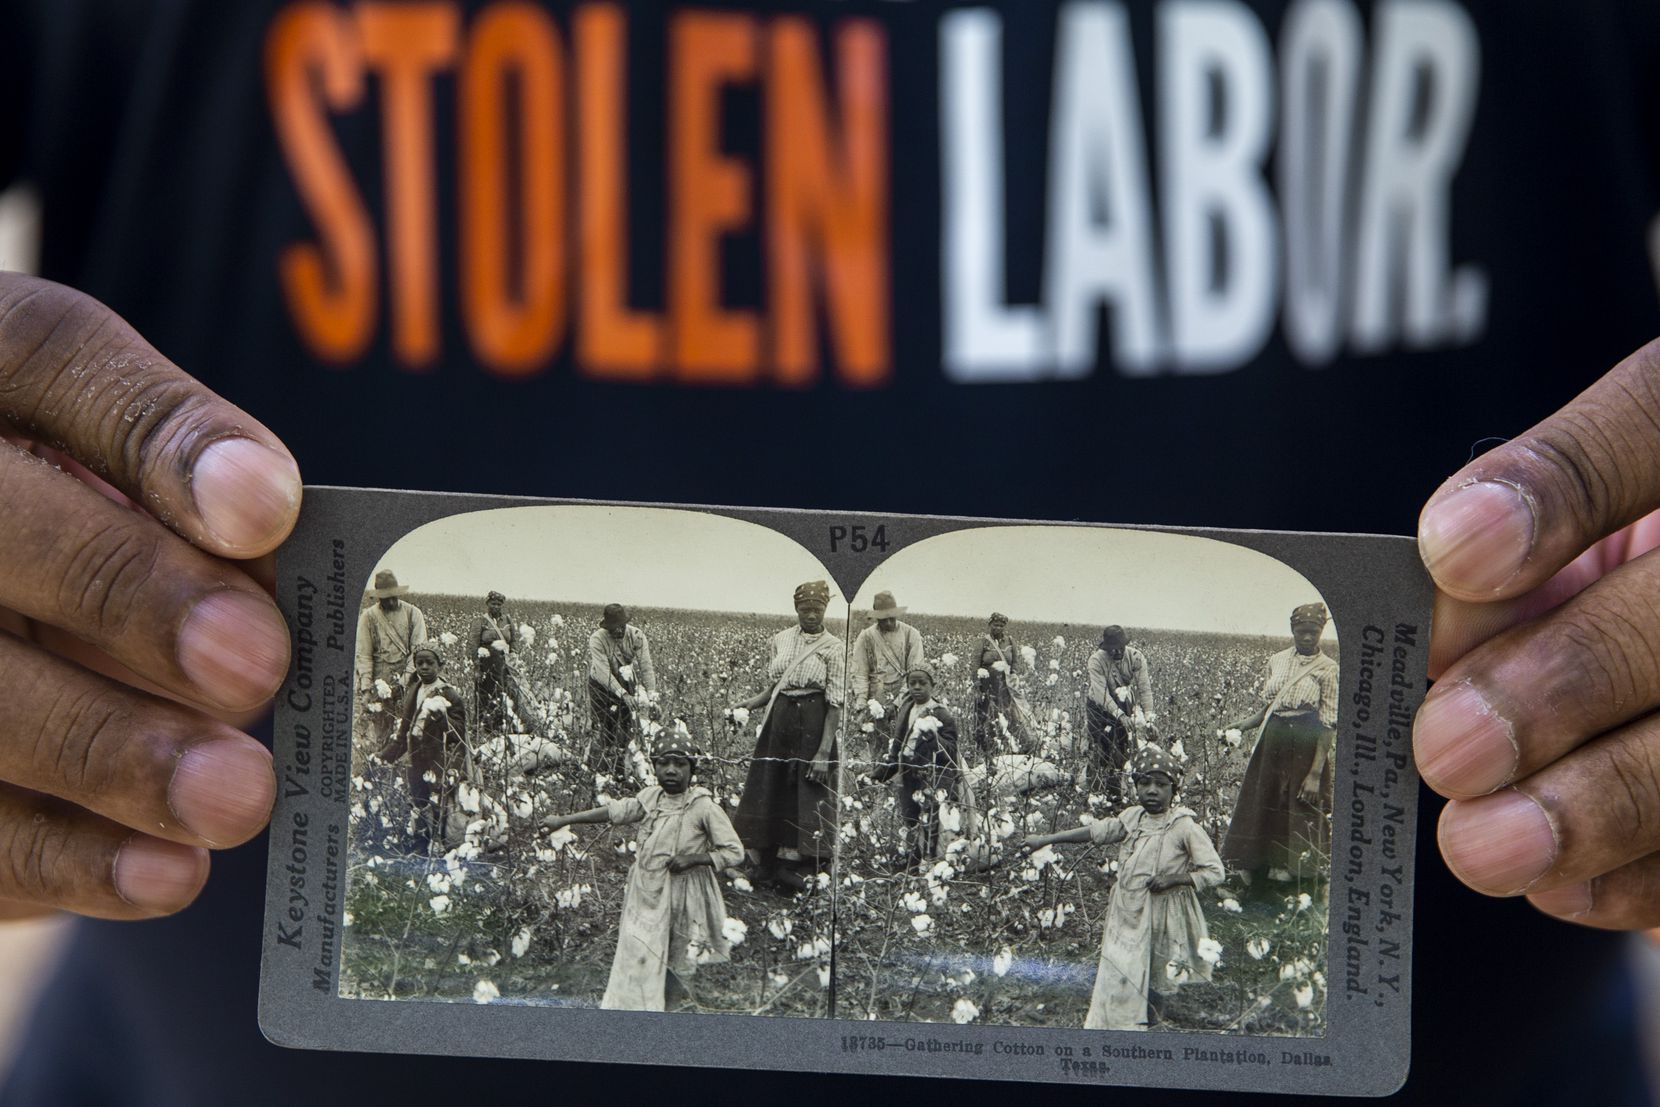 Dallas Truth, Racial Healing and Transformation executive director Jerry Hawkins holds a stereo card depicting laborers (possibly enslaved persons) gathering cotton on a plantation in Dallas (date unknown).